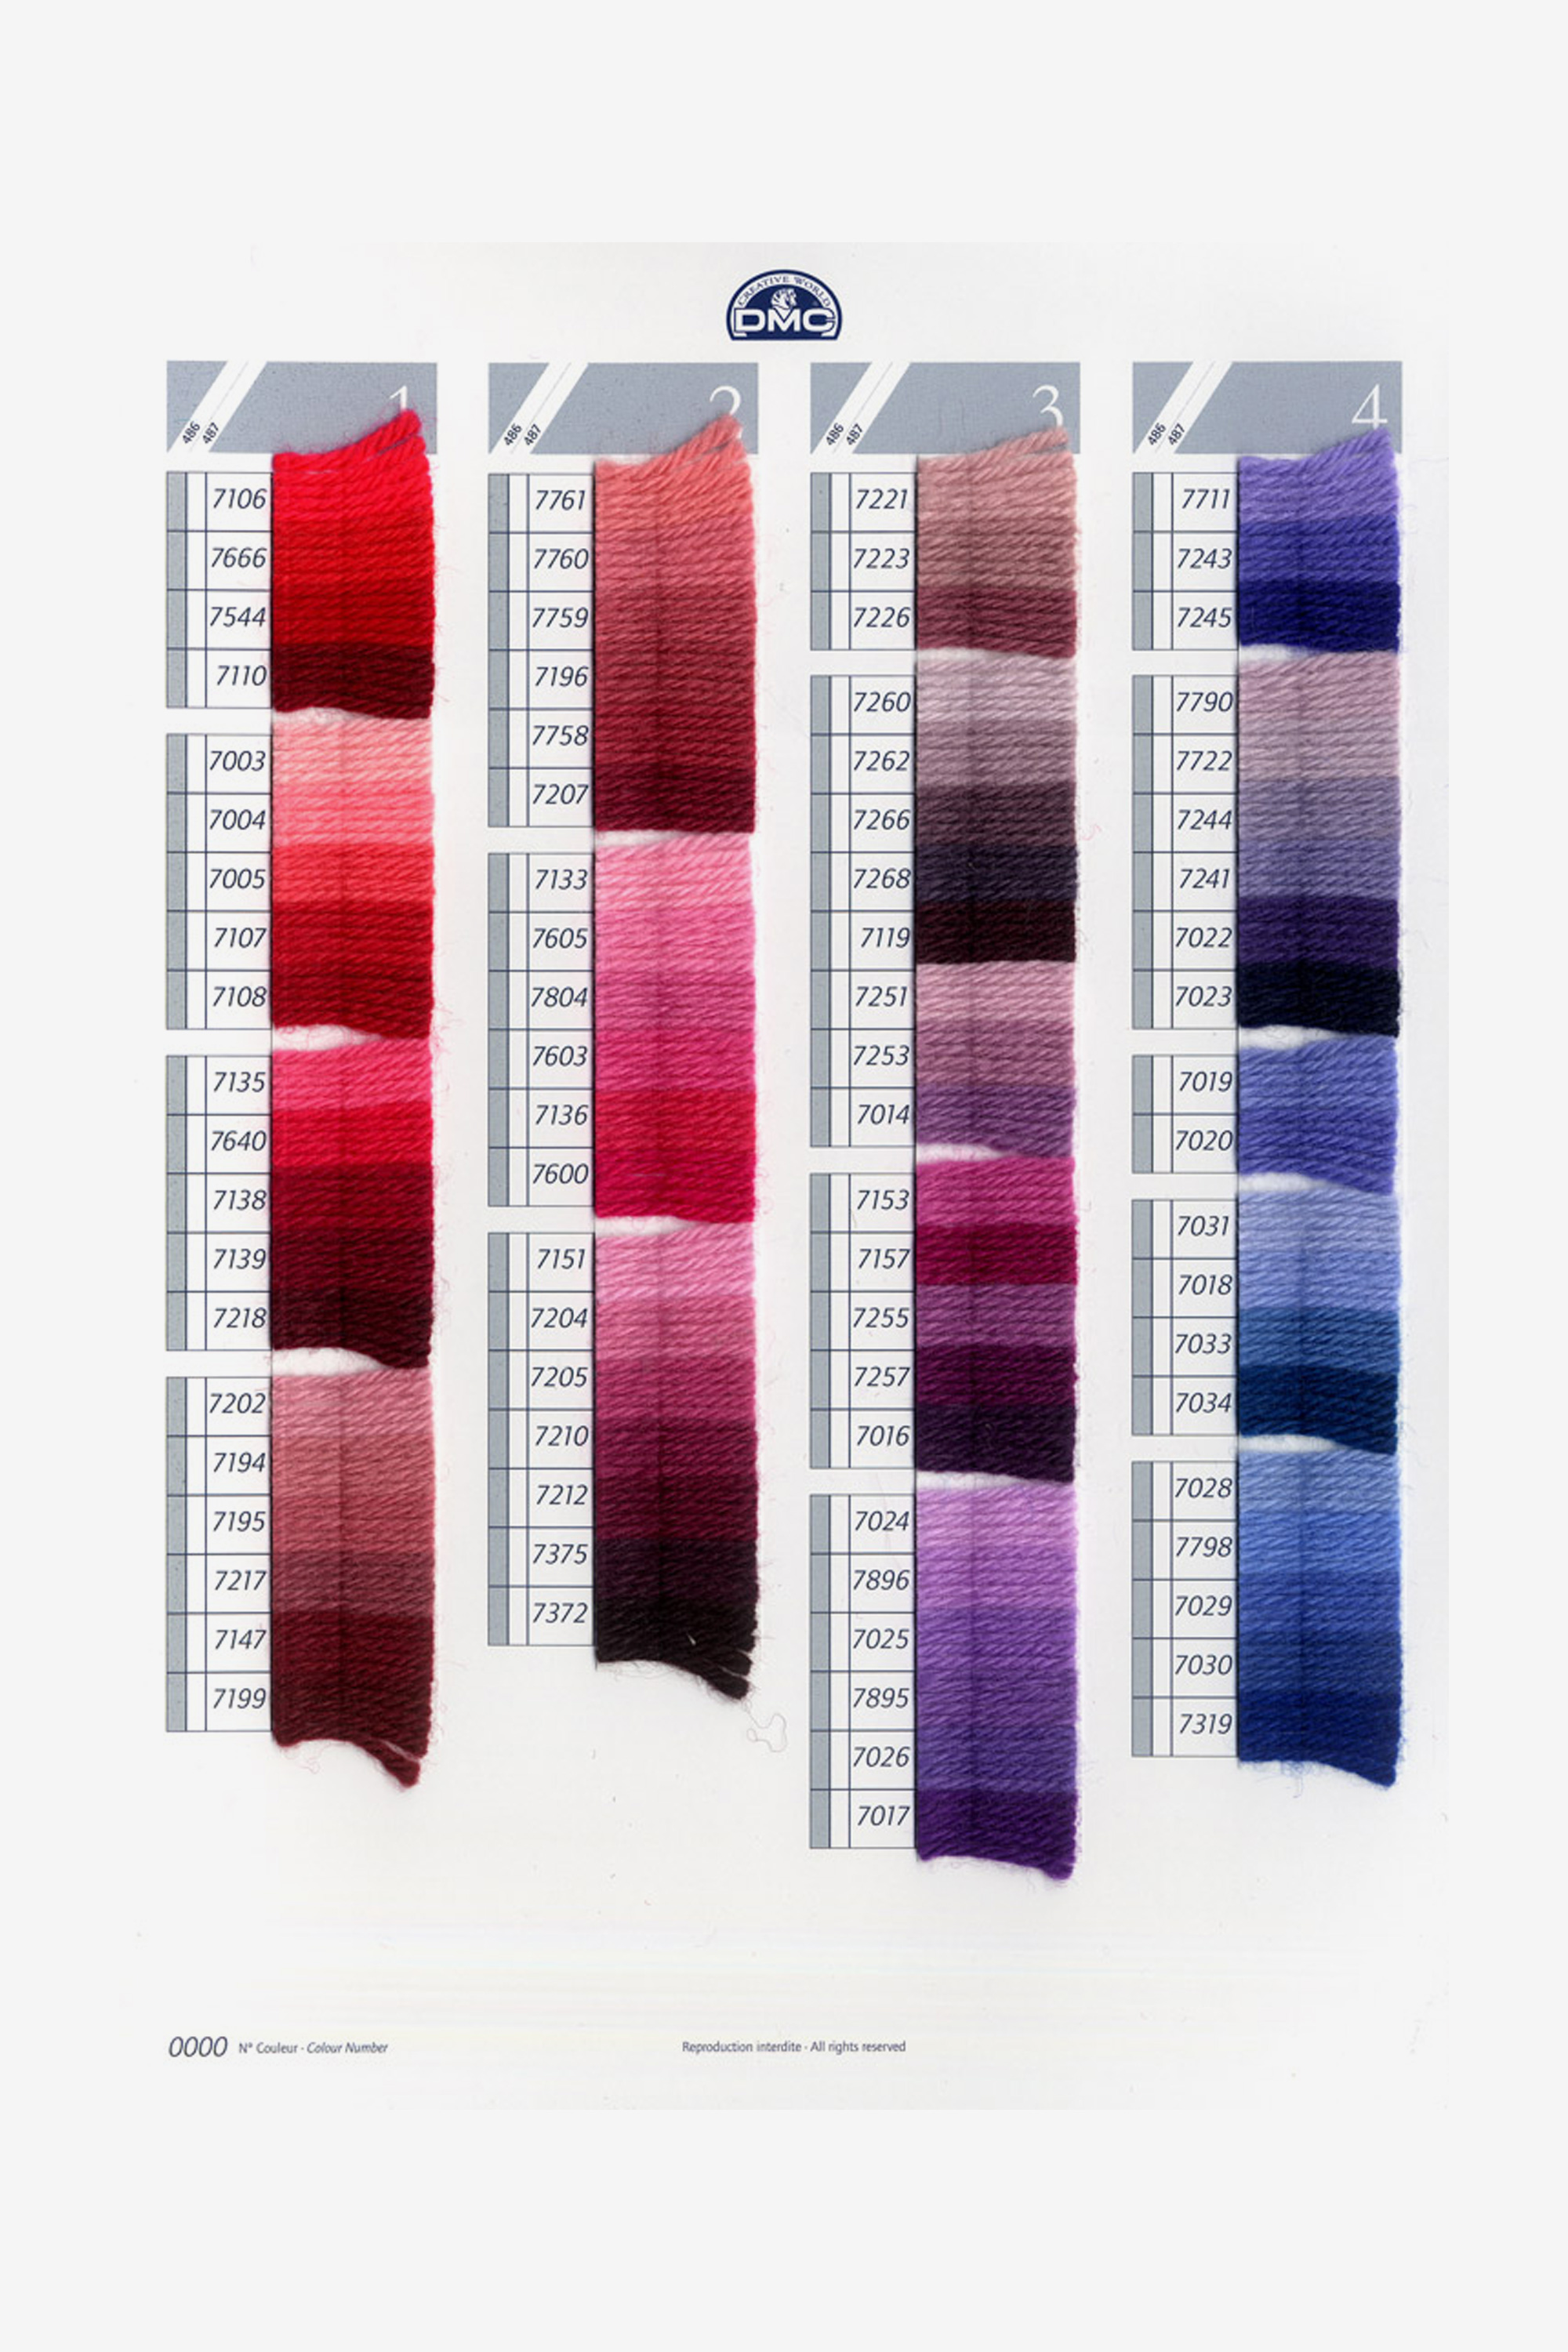 Dmc Tapestry Wool Shade Card Dmc Colour Cards Dmc